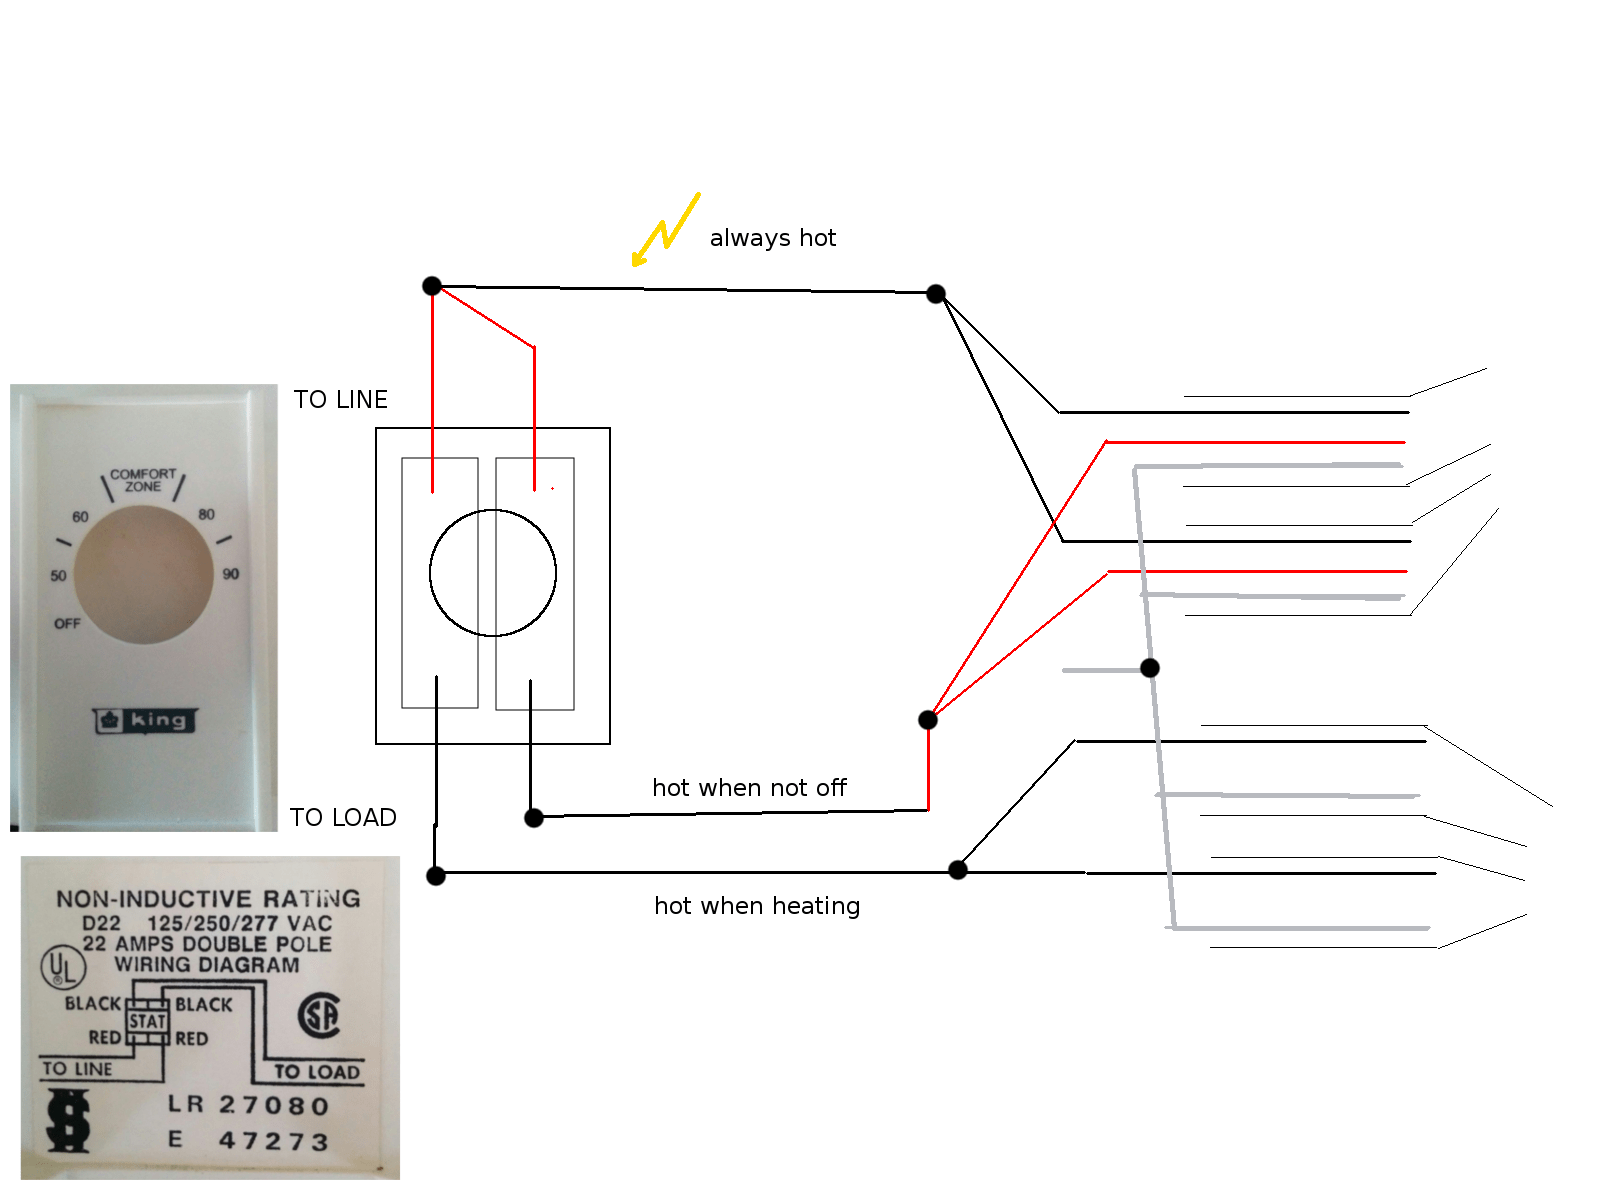 hight resolution of marley baseboard heater thermostat wiring on marley images free